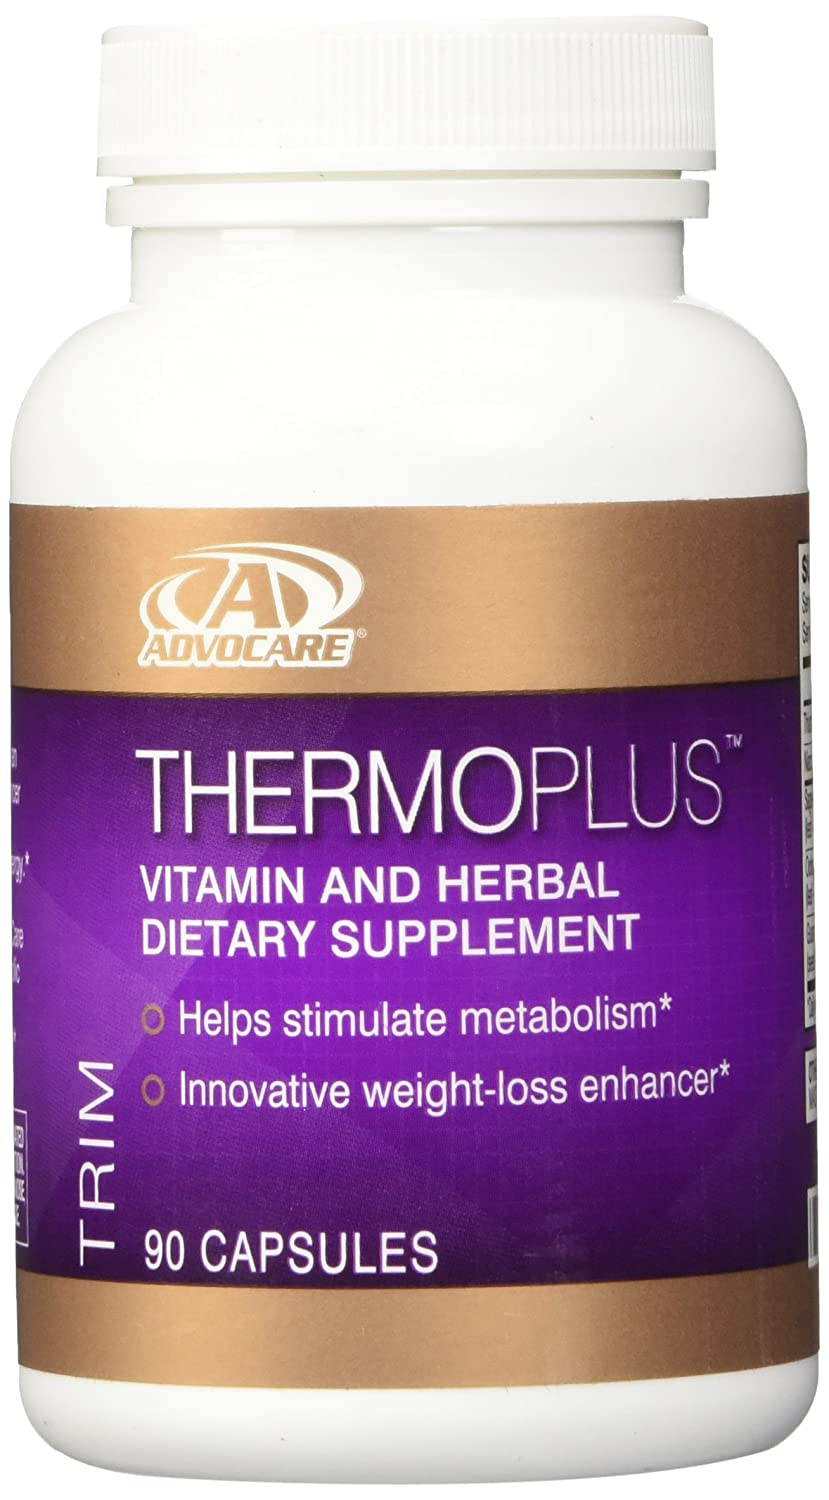 Advocare products cost - Amazon Com Advocare Thermoplus Vitamin And Herbal Dietary Supplement 90 Capsules Health Personal Care